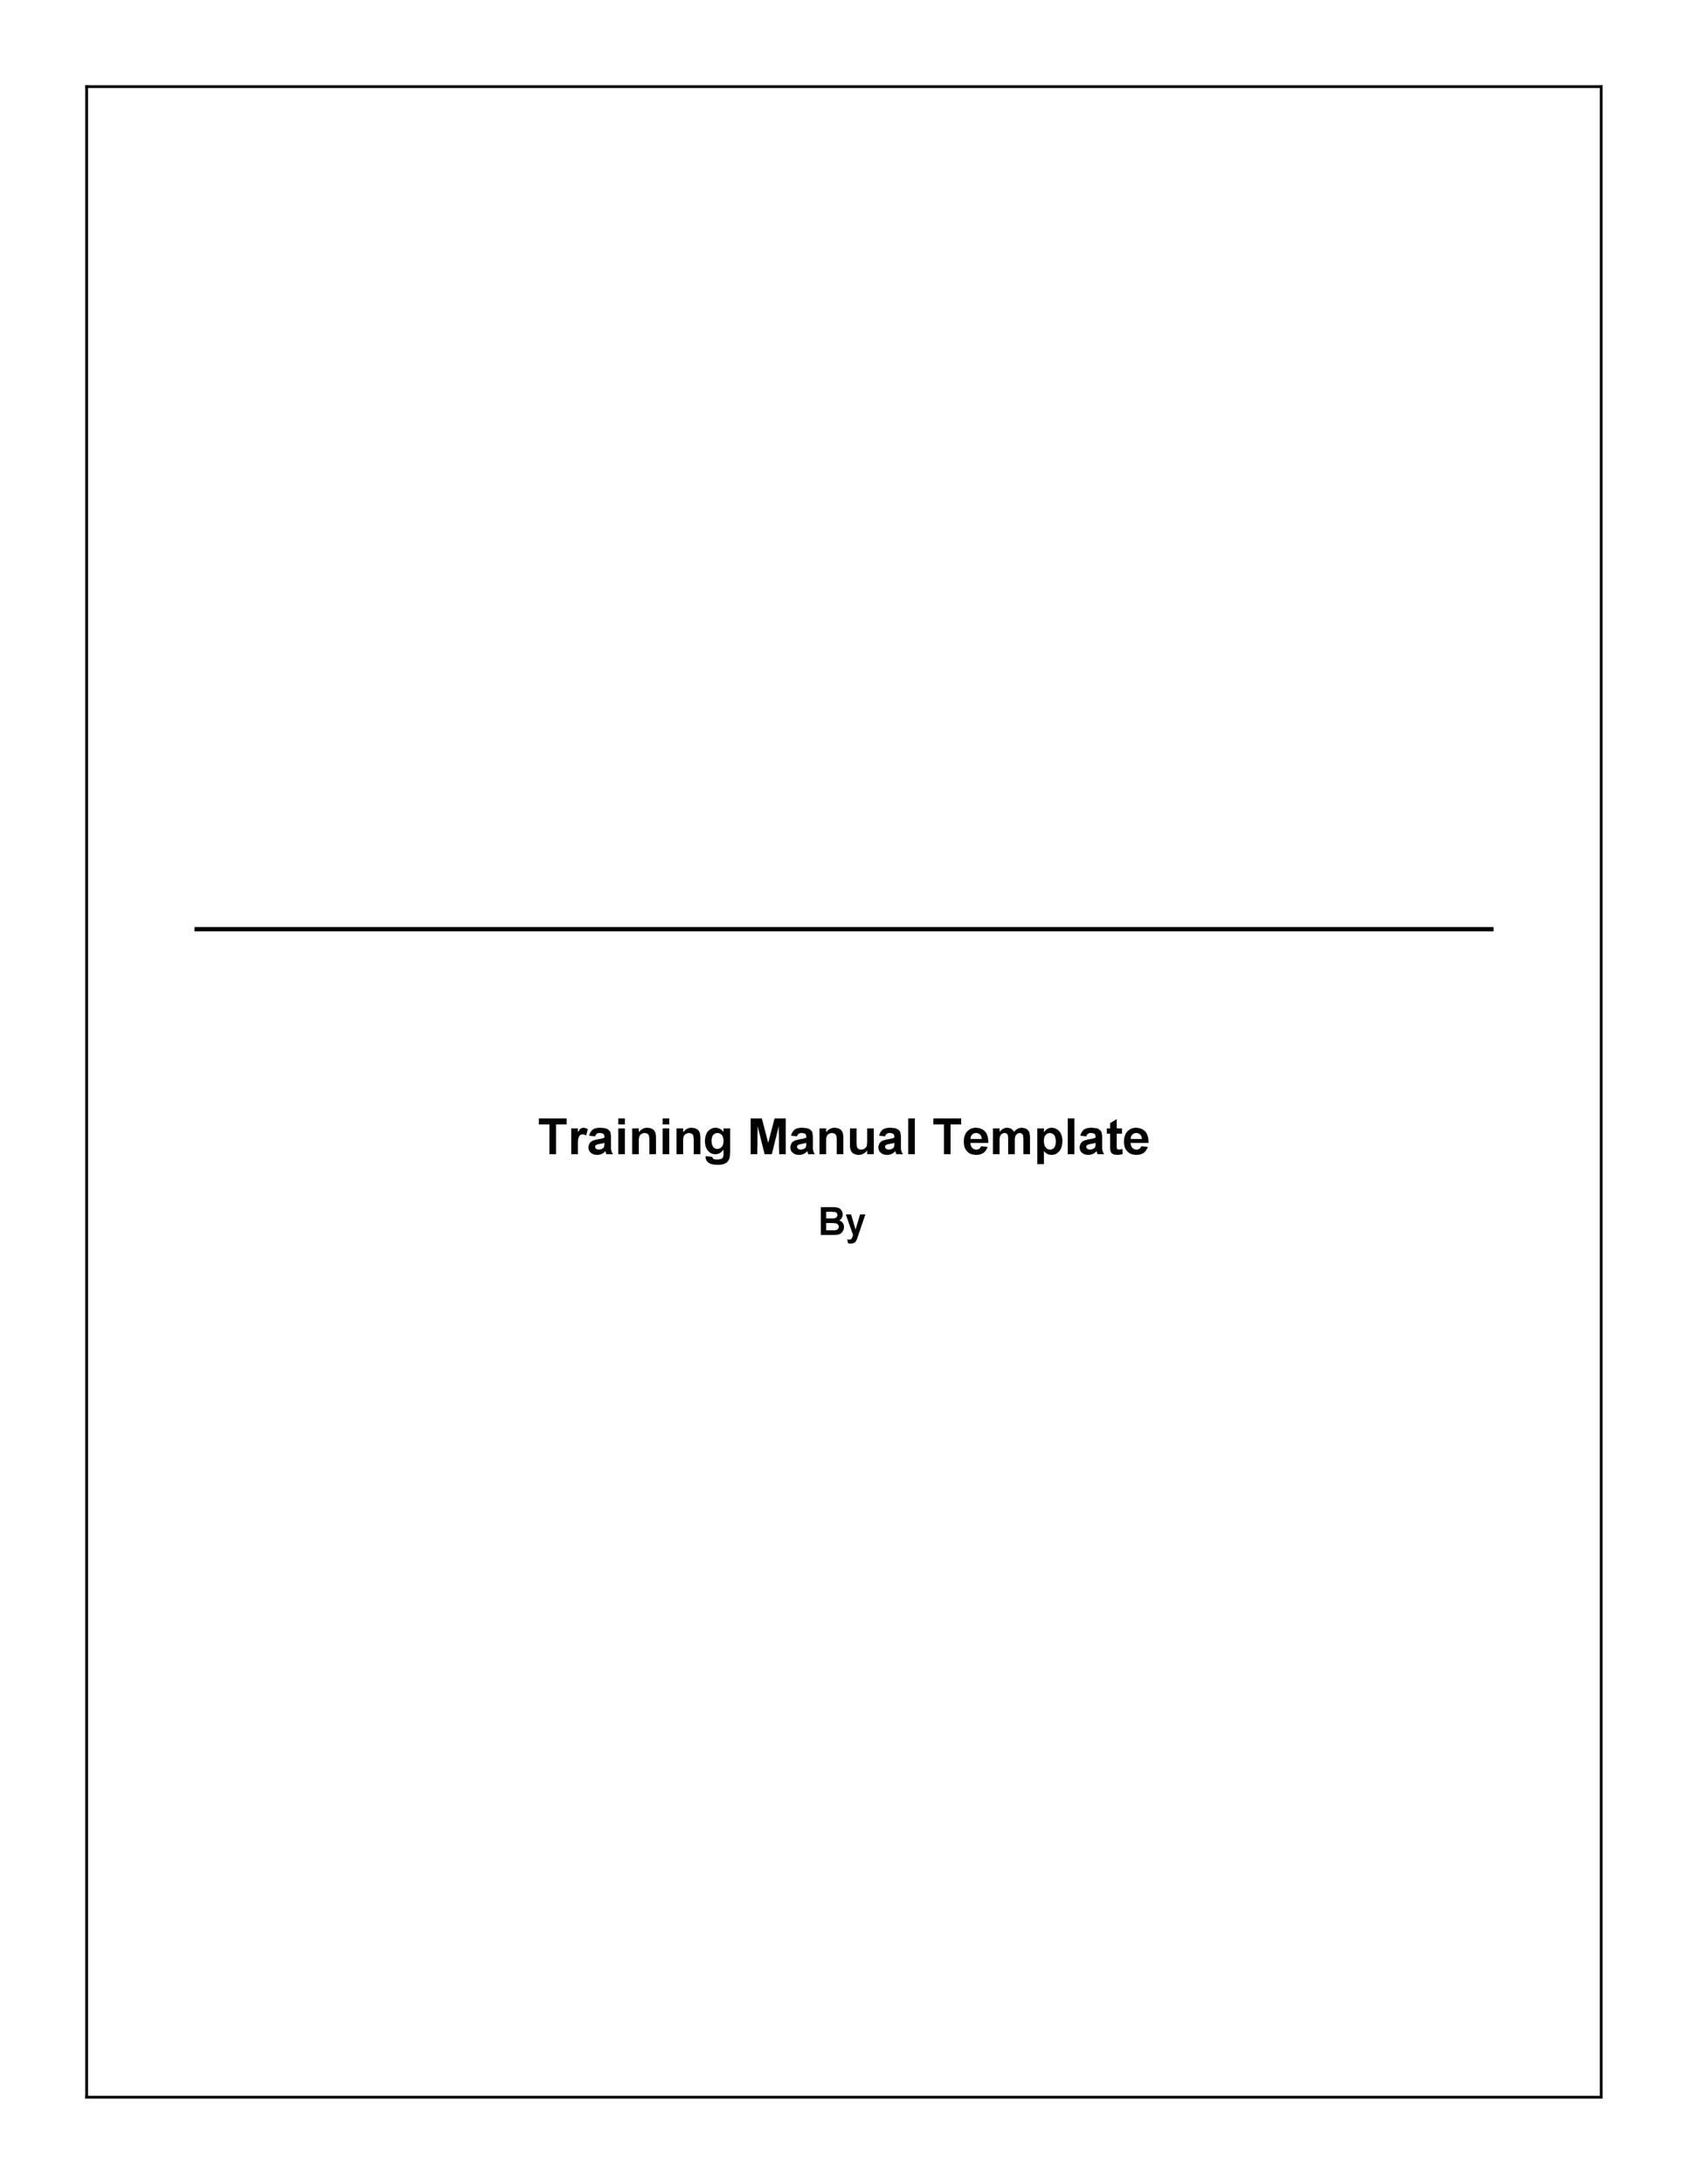 Free training manual template 19